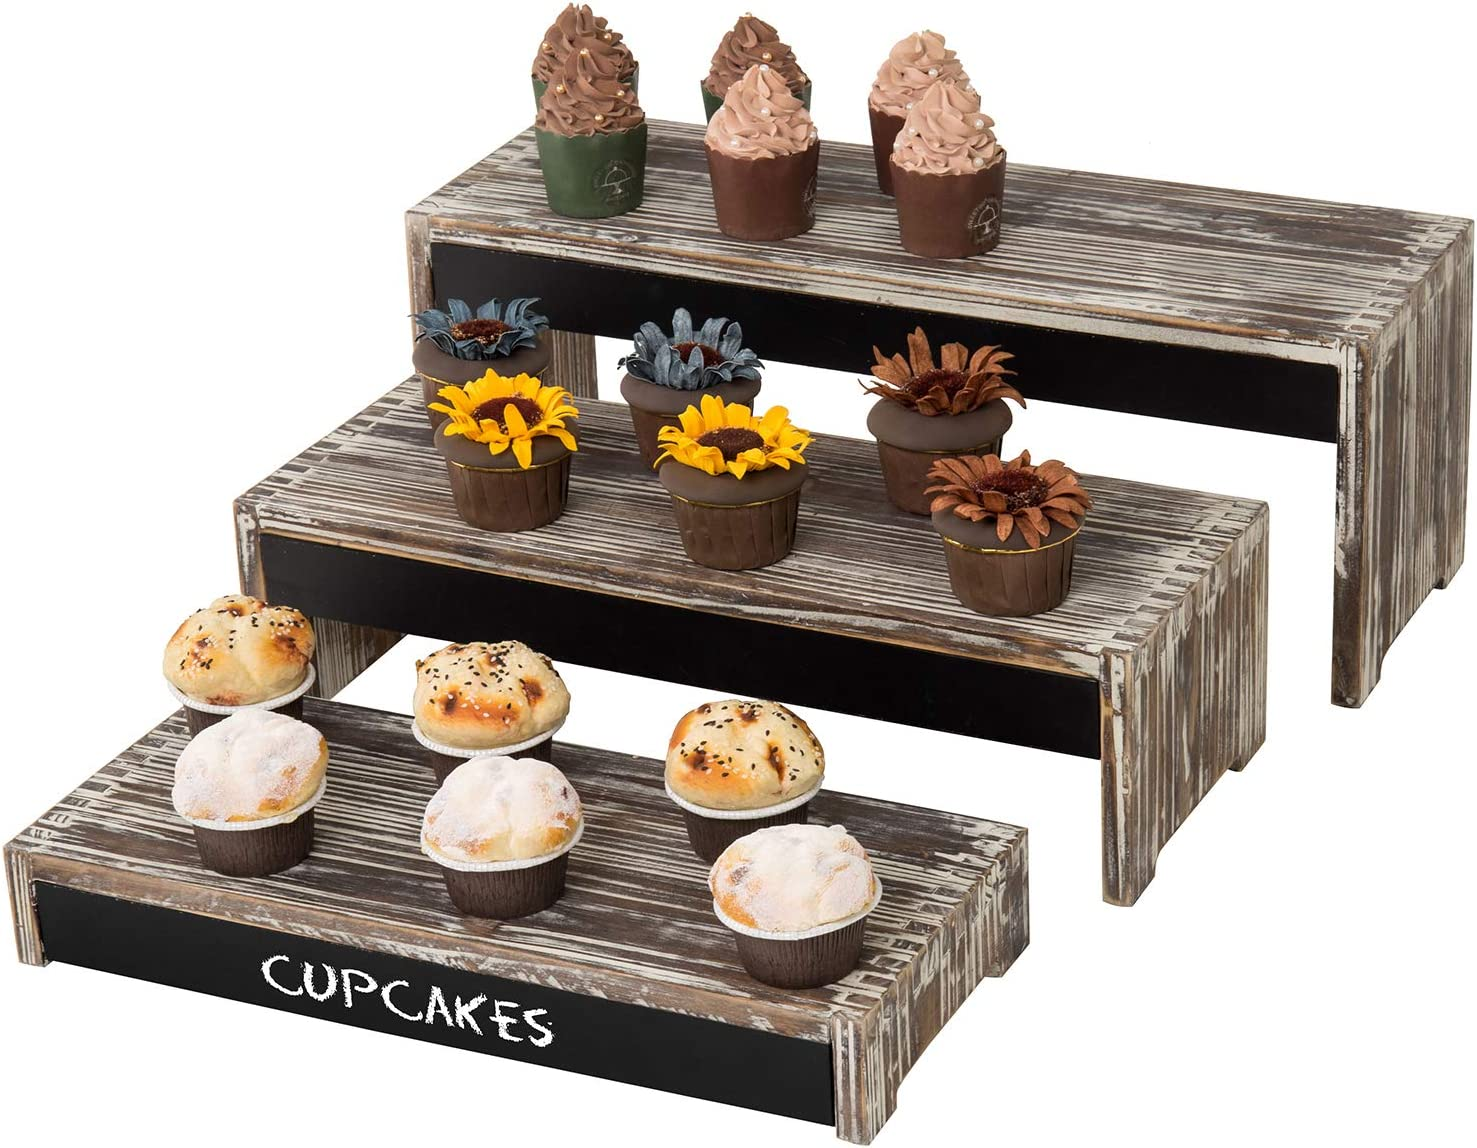 MyGift Rustic Torched Wood Commercial Retail Merchandise Display Risers/Cupcake Dessert Stands with Chalkboard Surfaces, Set of 3